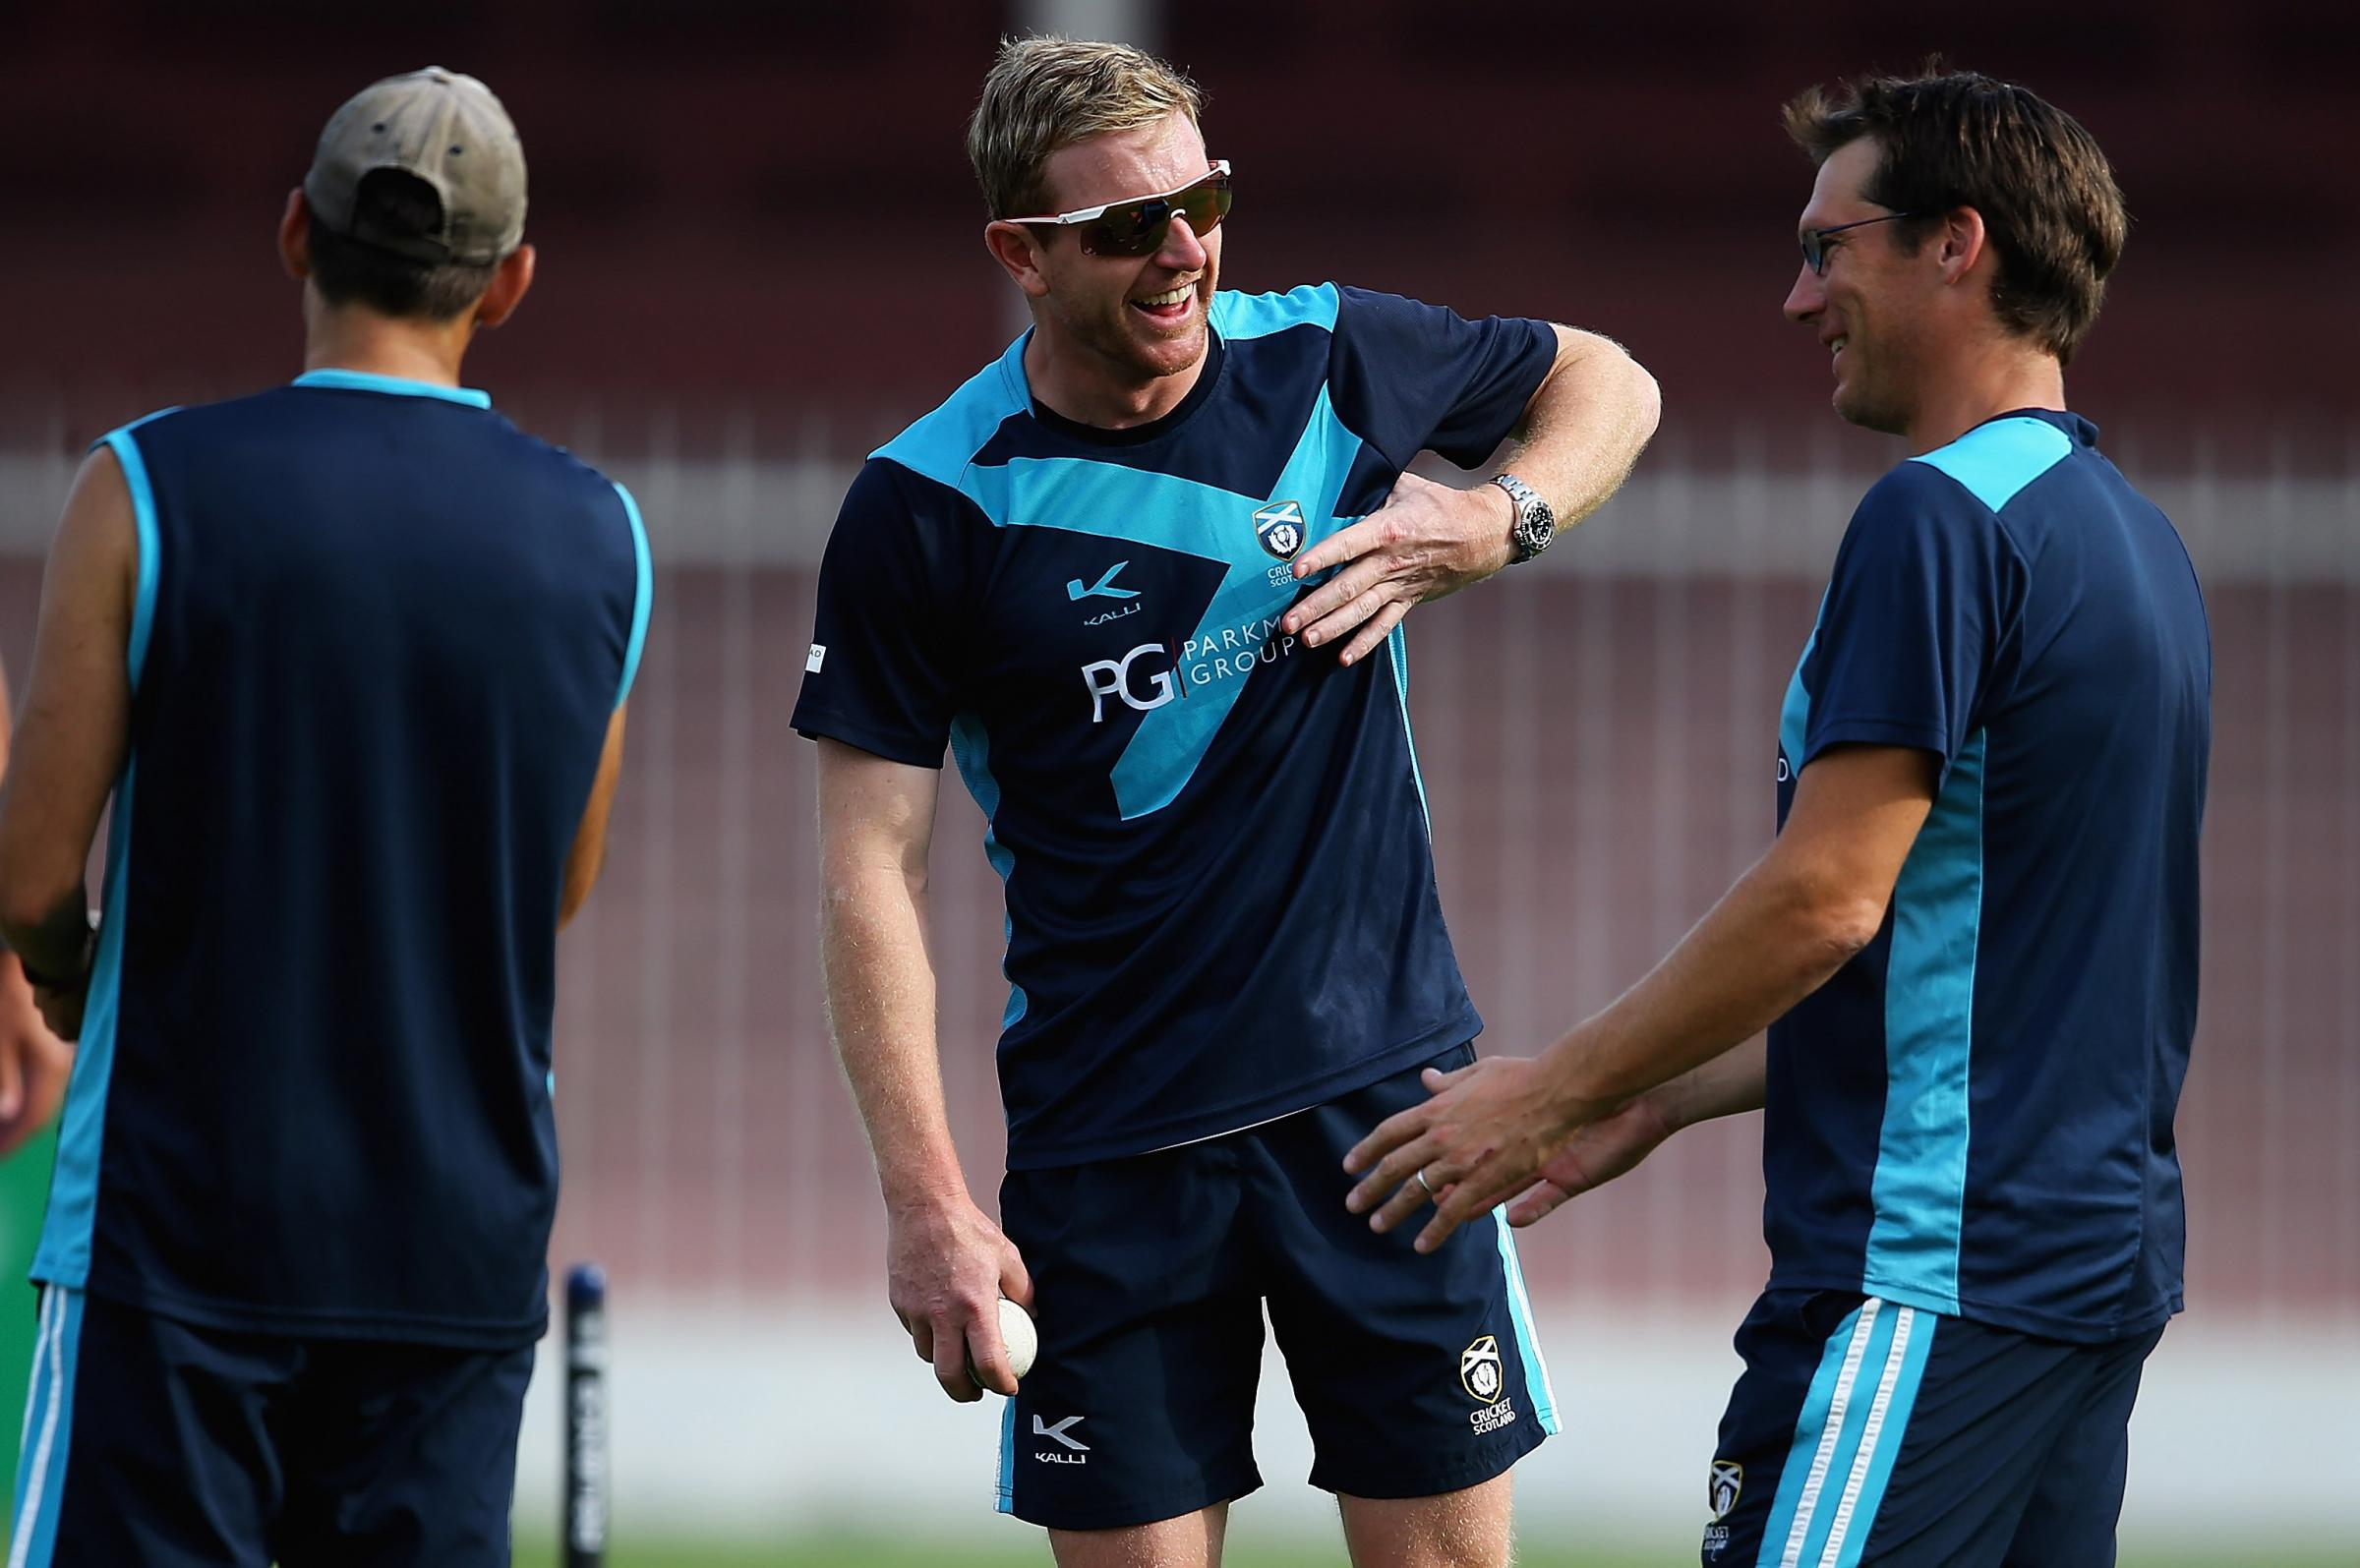 Paul Collingwood, part of the coaching staff with Scotland talks to Peter Steindl (L) and Toby Bailey ahead of the ICC World Twenty20 Qualifier match between Scotland and Bermuda at Sharjah Cricket Stadium on November 15, 2013 in Sharjah, United Arab Emi